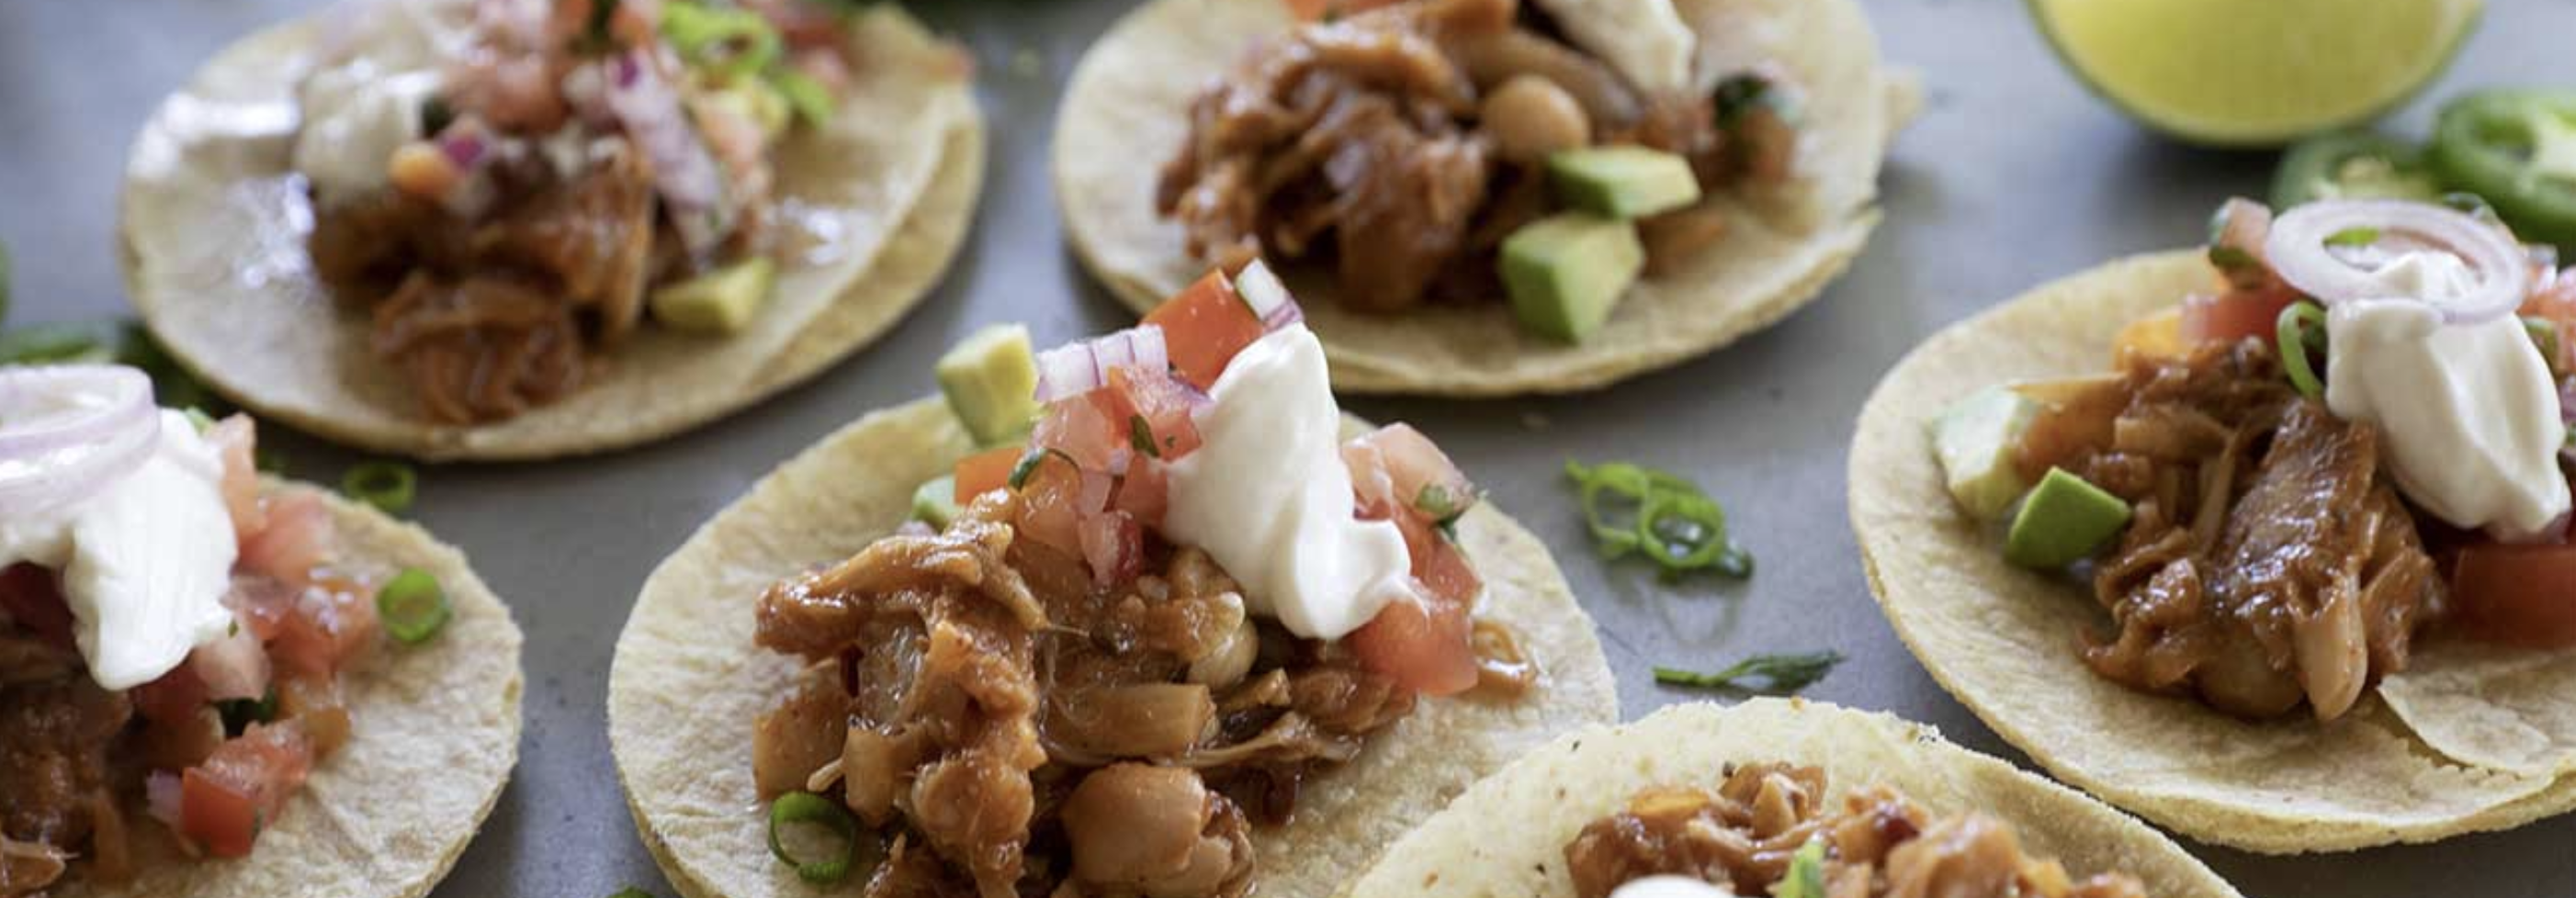 CHIPOTLE JACKFRUIT TACOS WITH PICO